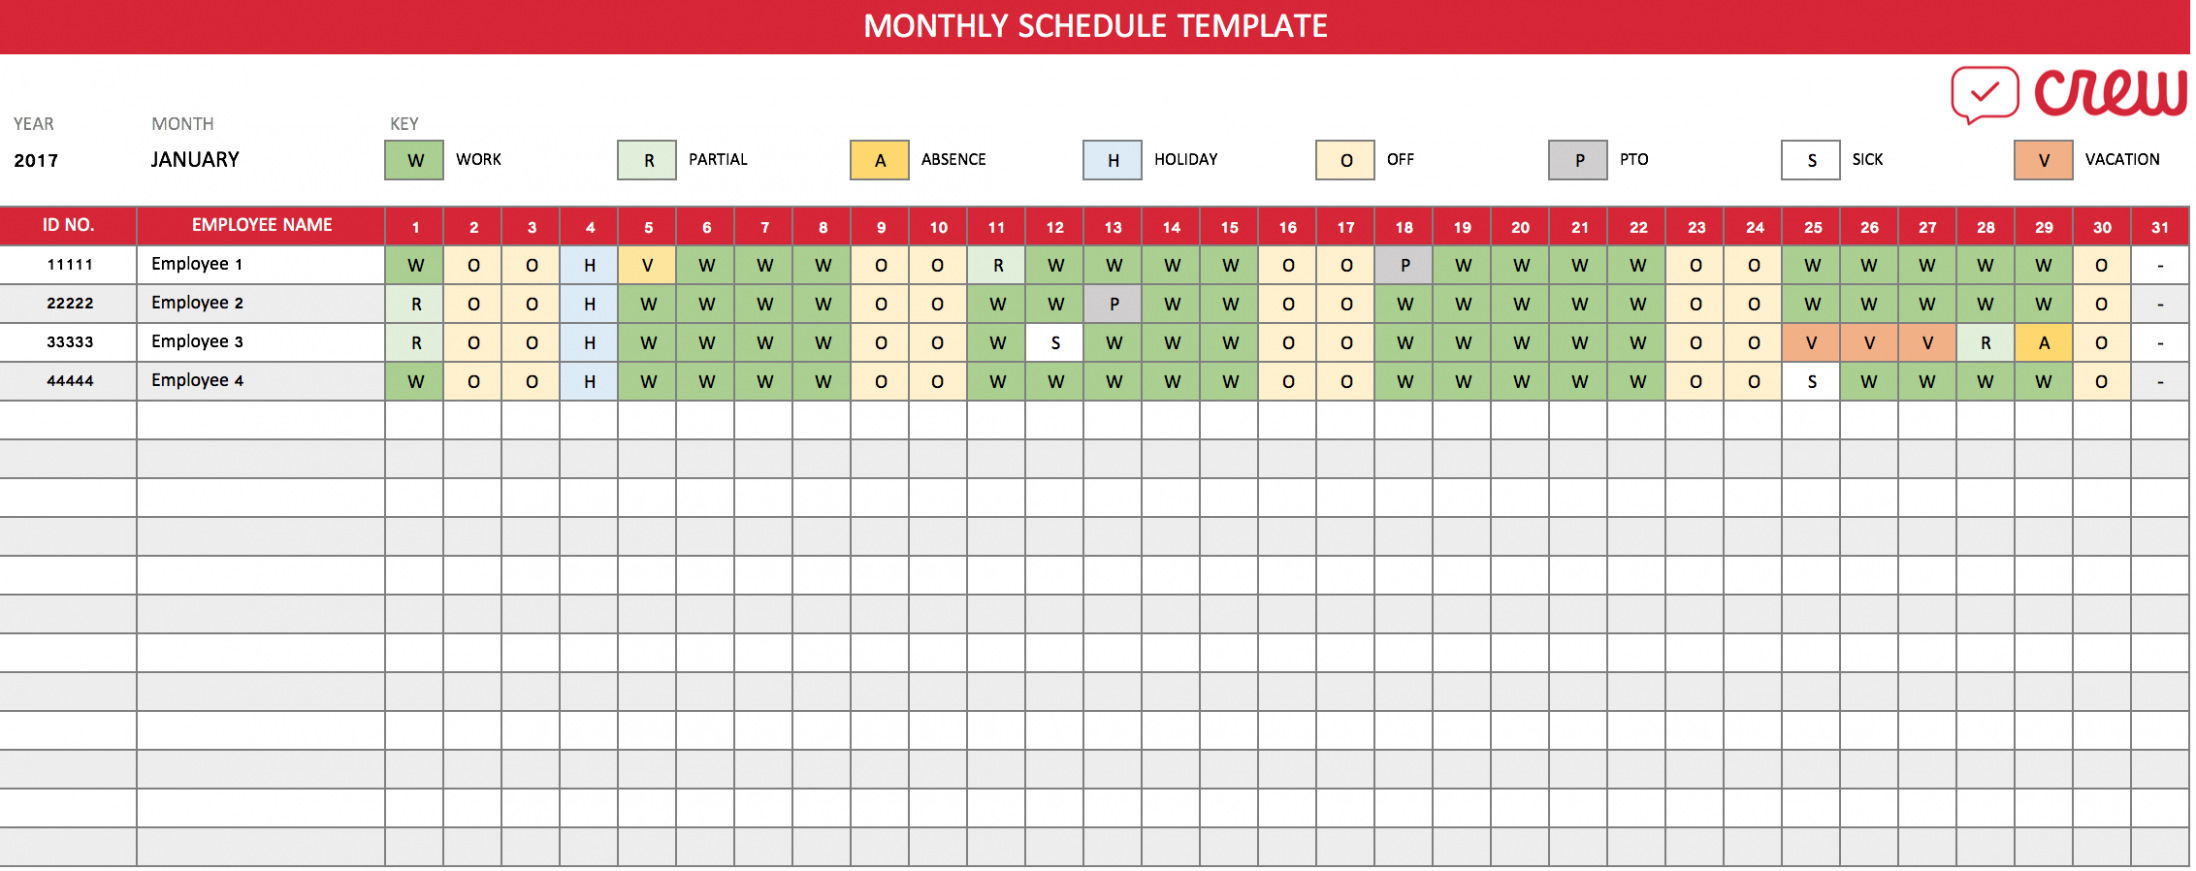 Free Download Free Monthly Work Schedule Template Crew – Top For Monthly Work Schedule Template